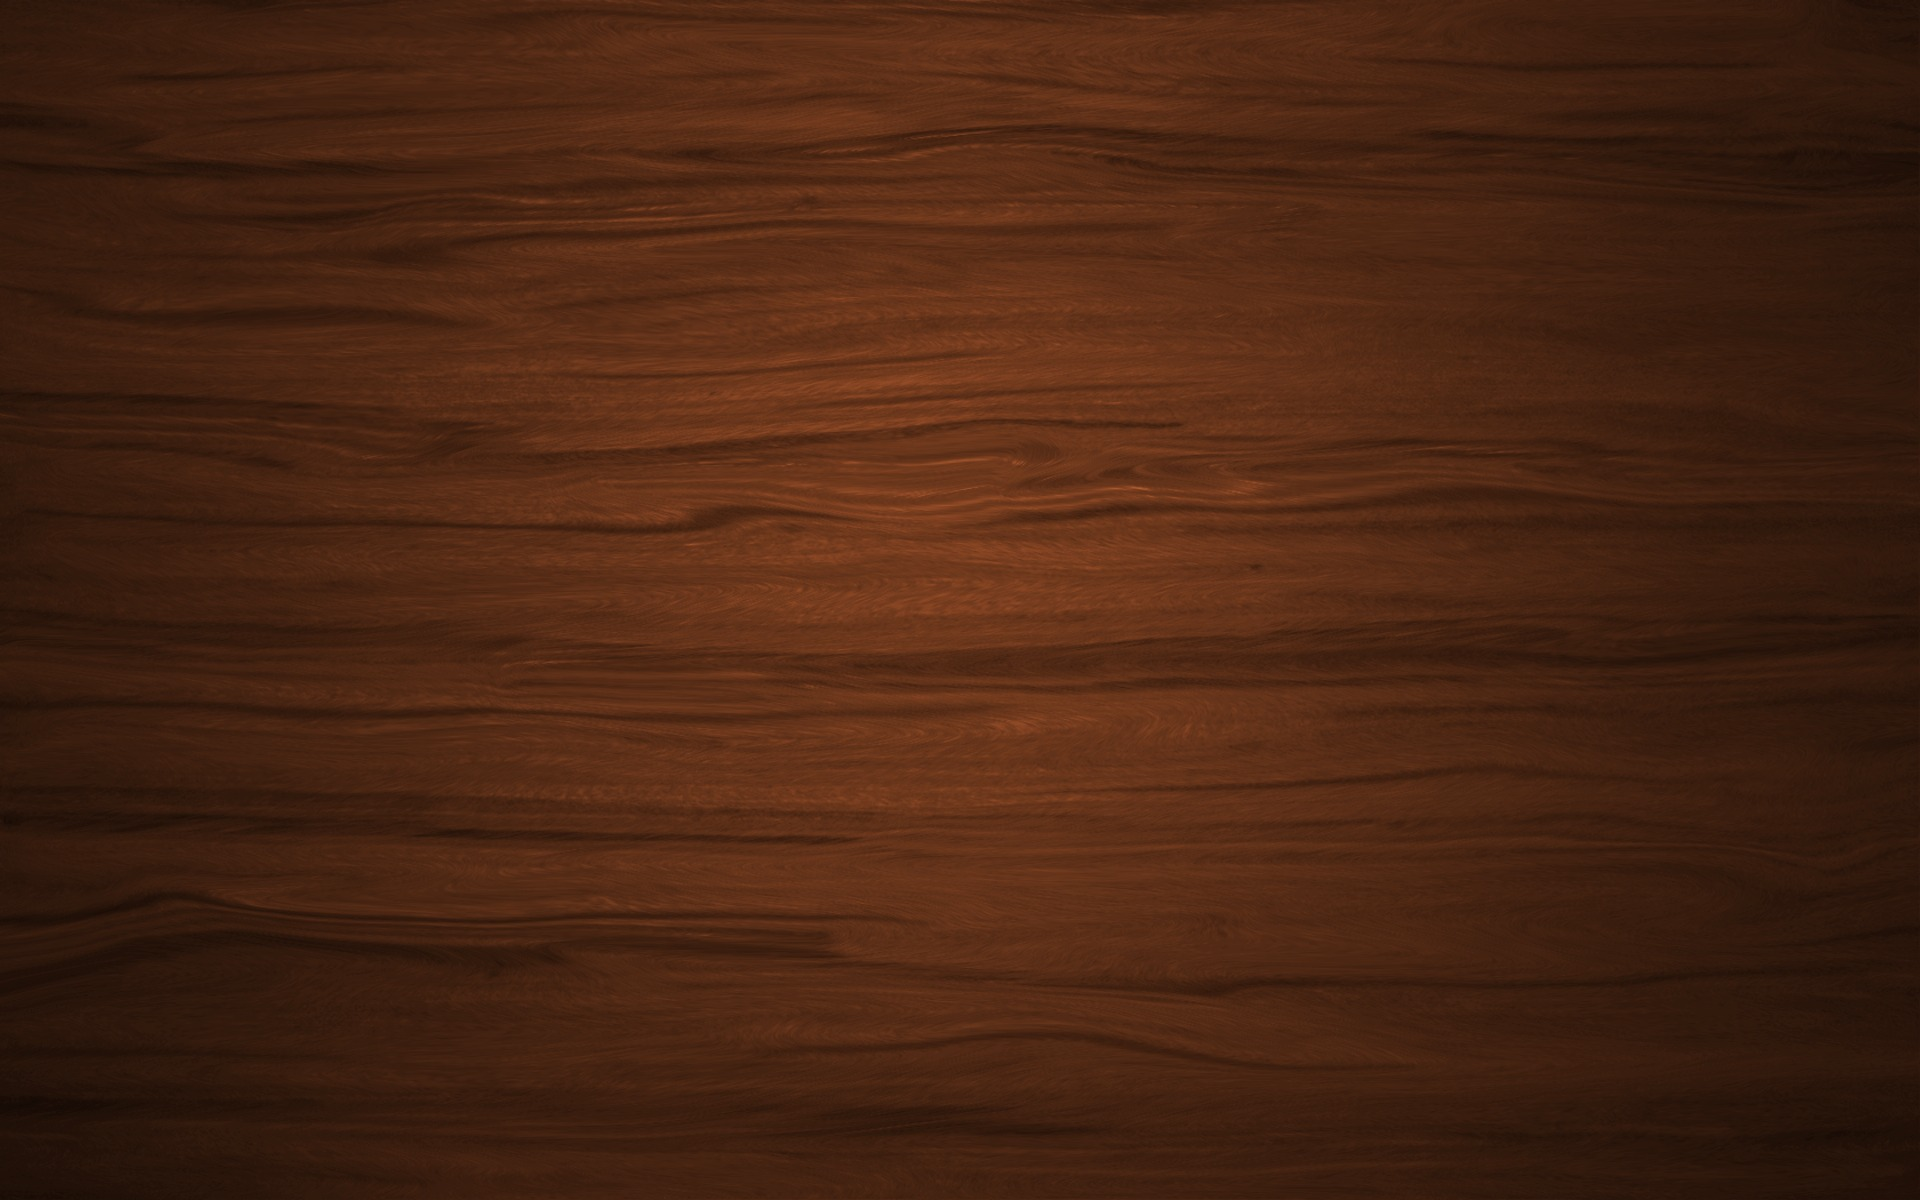 Pics photos wood texture background - Download Wood Texture Background Pictures In High Definition Or